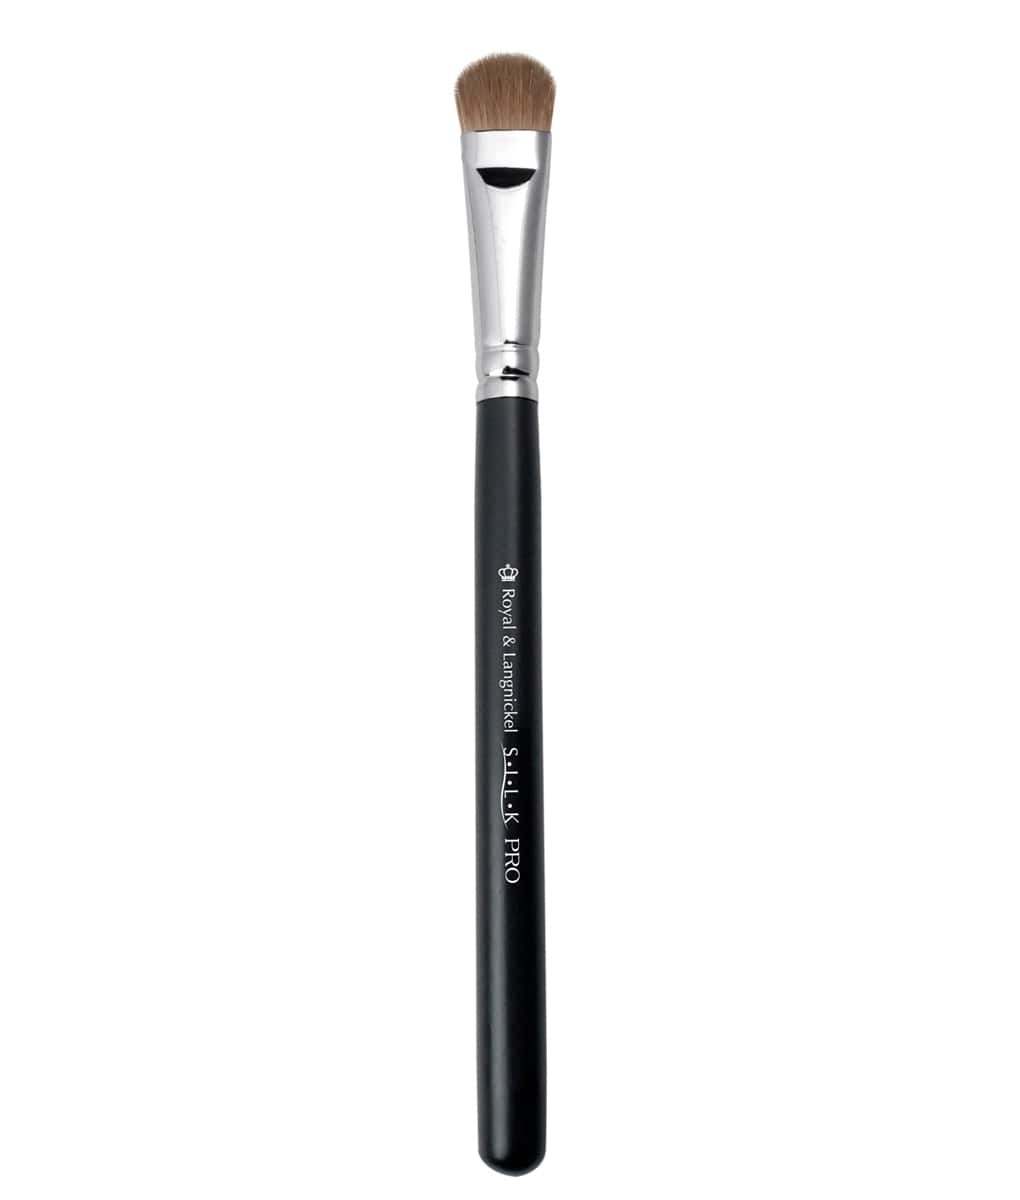 Medium Eye Shader Brush